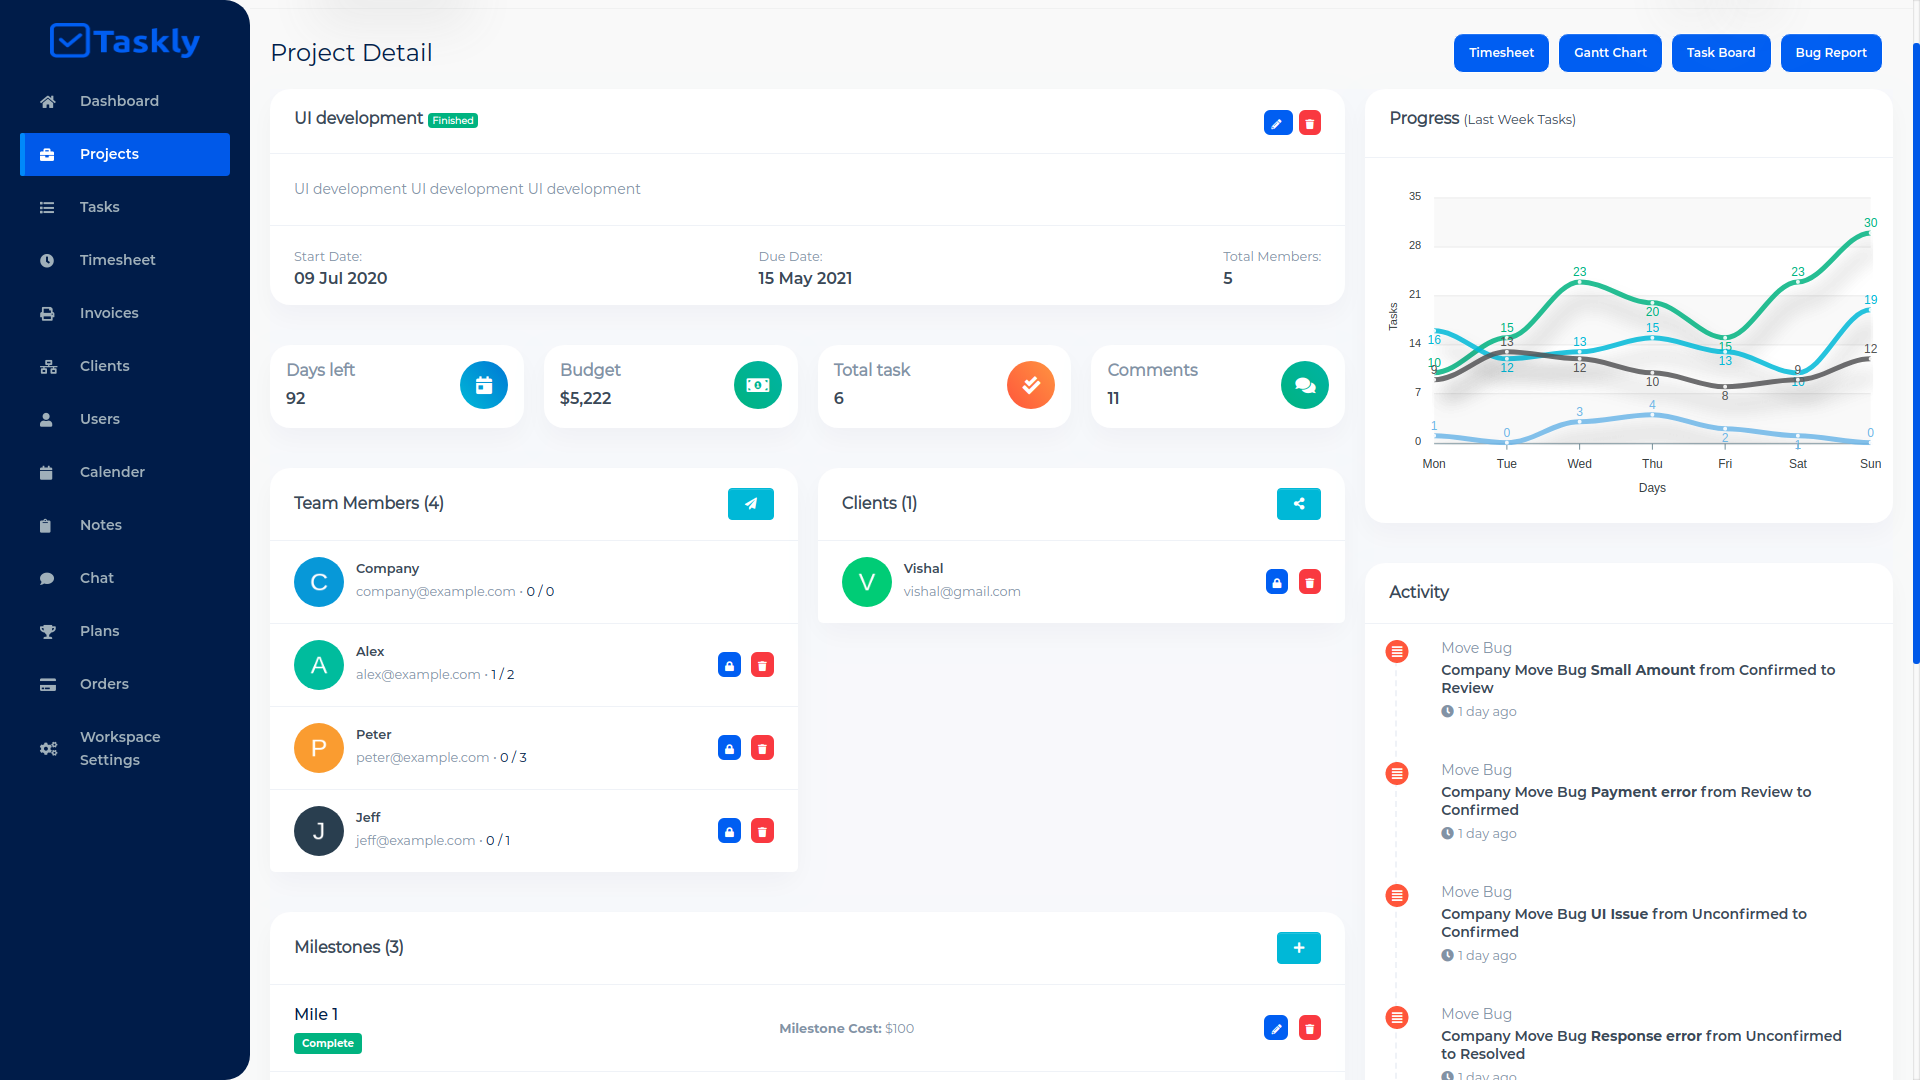 TASKLY SaaS – Project Management Tool - 7